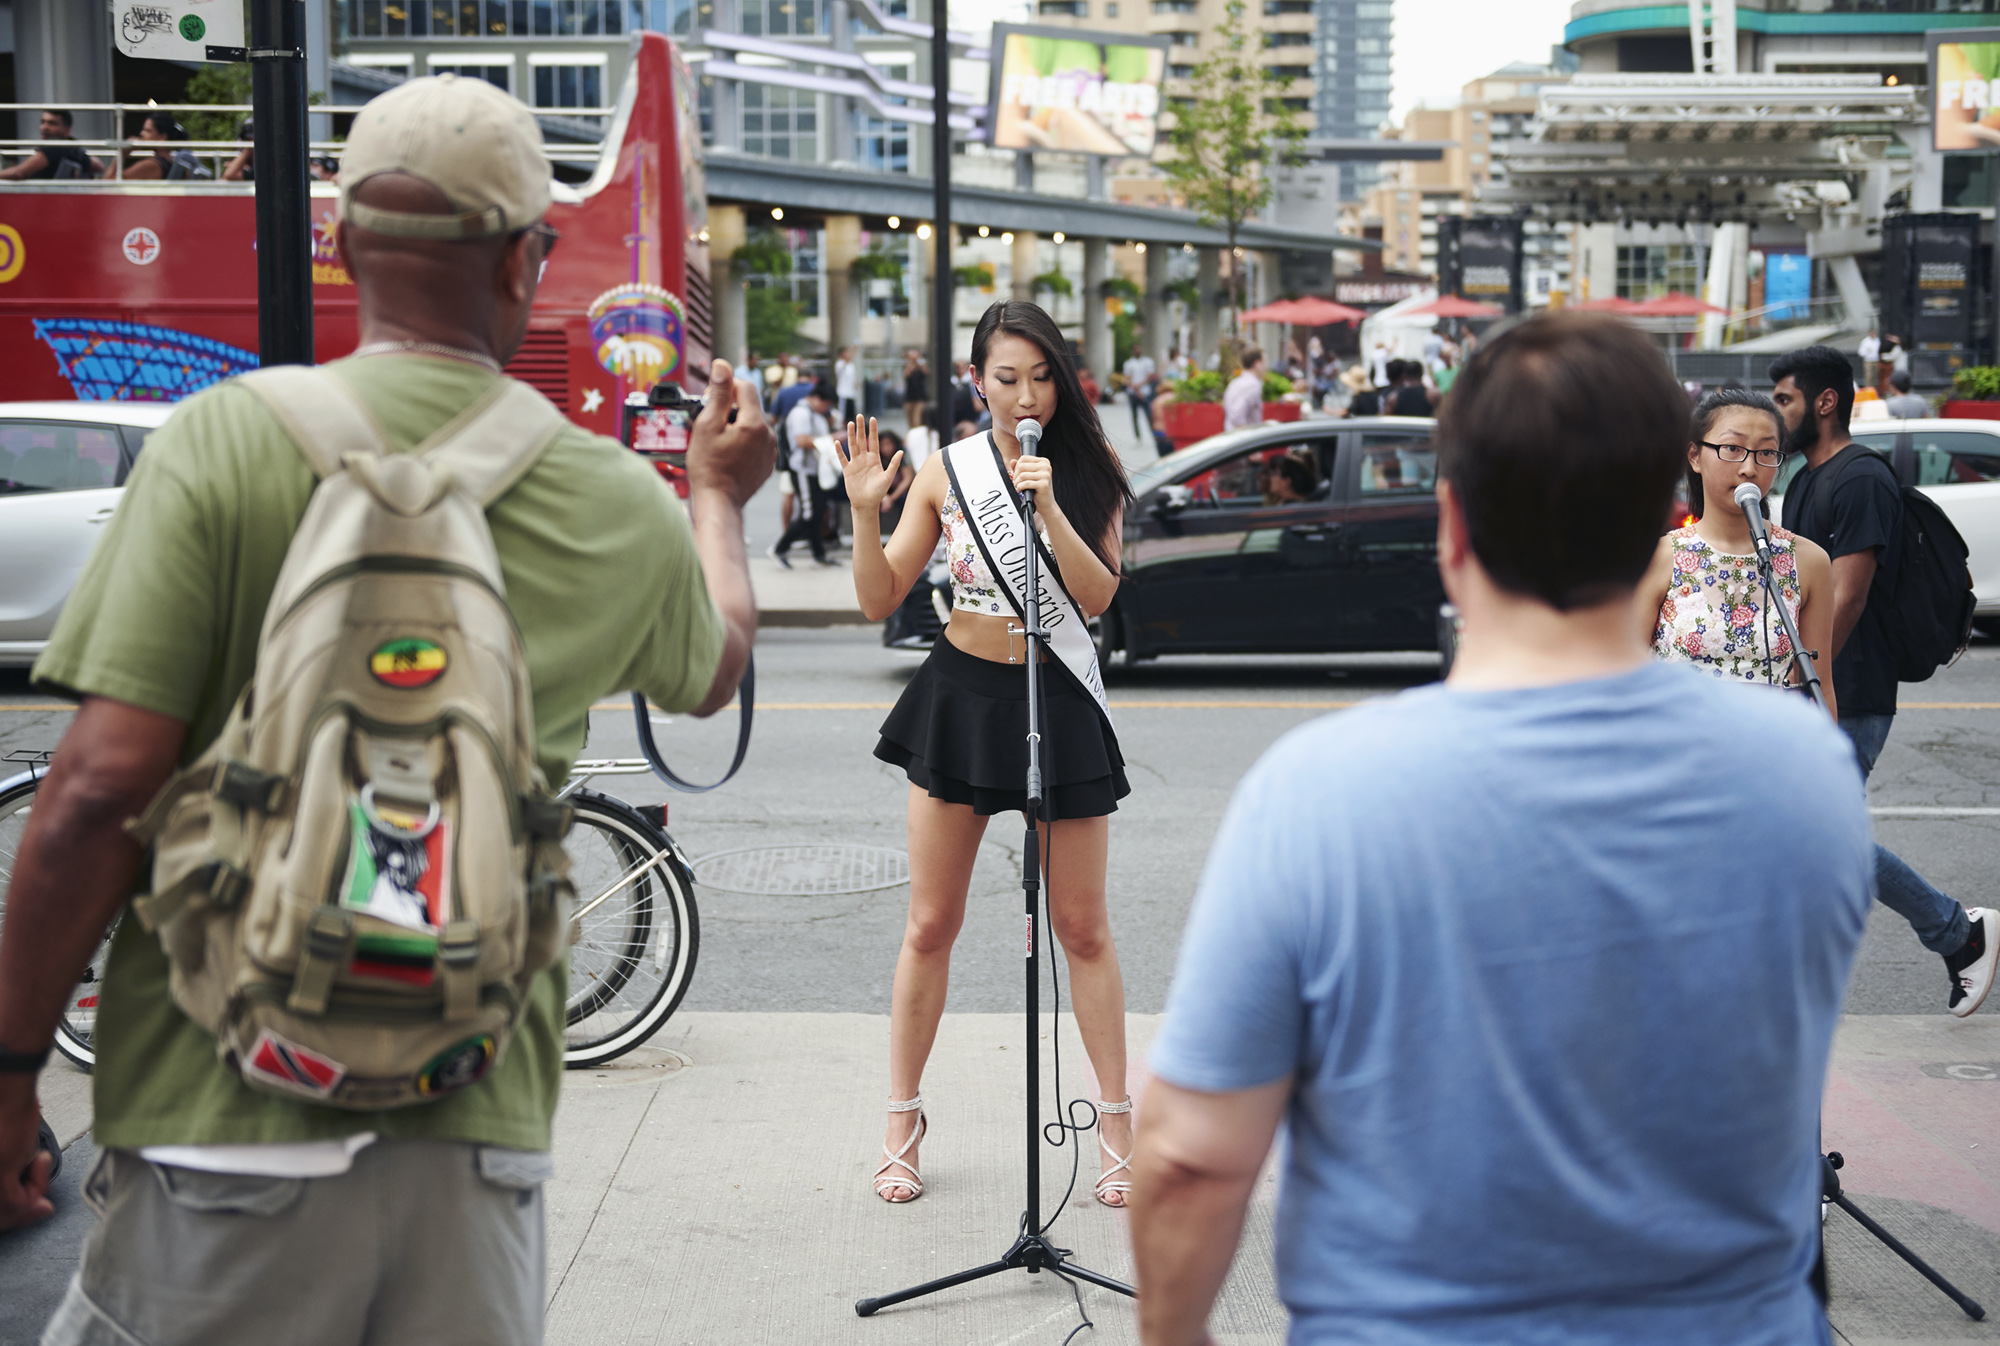 Alice Li, reigning Miss Intercontinental Canada 2018, performs at Yonge and Dundas Square to collect donations for the Children's Wish Foundation.